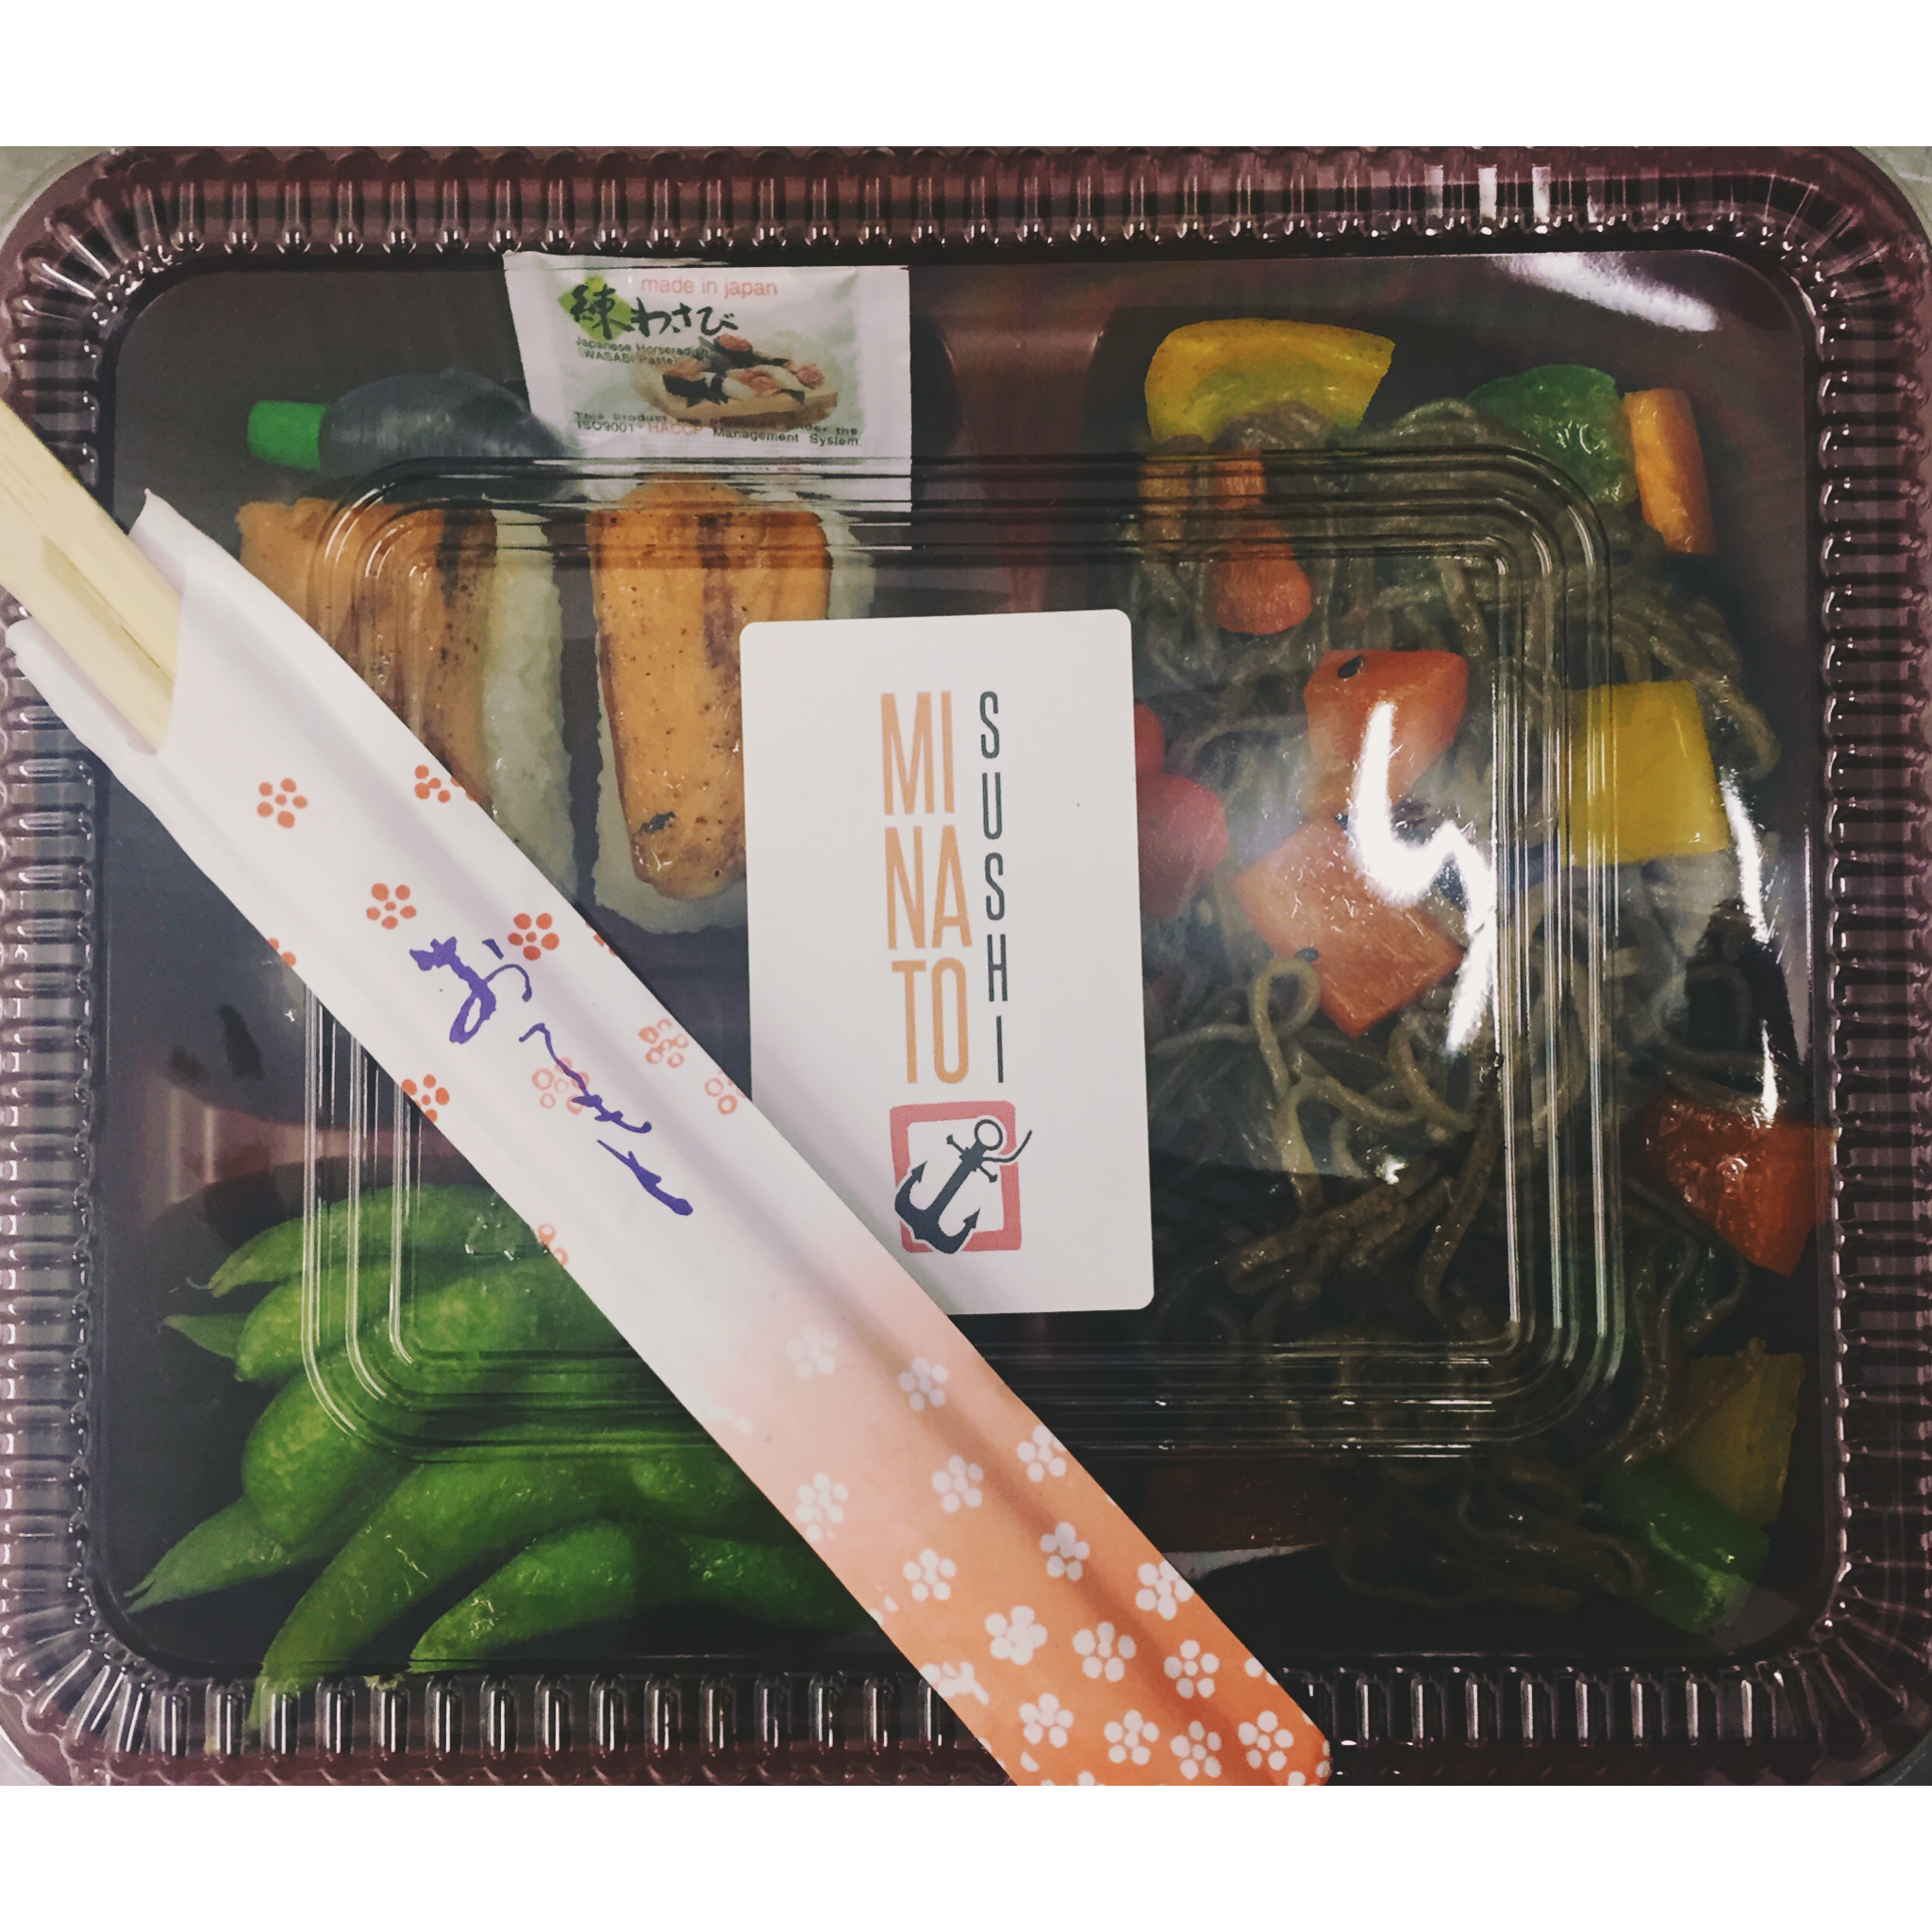 THE SOBA NOODLE BENTO BOX - £5  Includes 2 x grilled teriyaki salmon nigiri, salted edamame beans, portion of soba noodles with mixed vegetables topped with roasted sesame seeds and chilli flakes